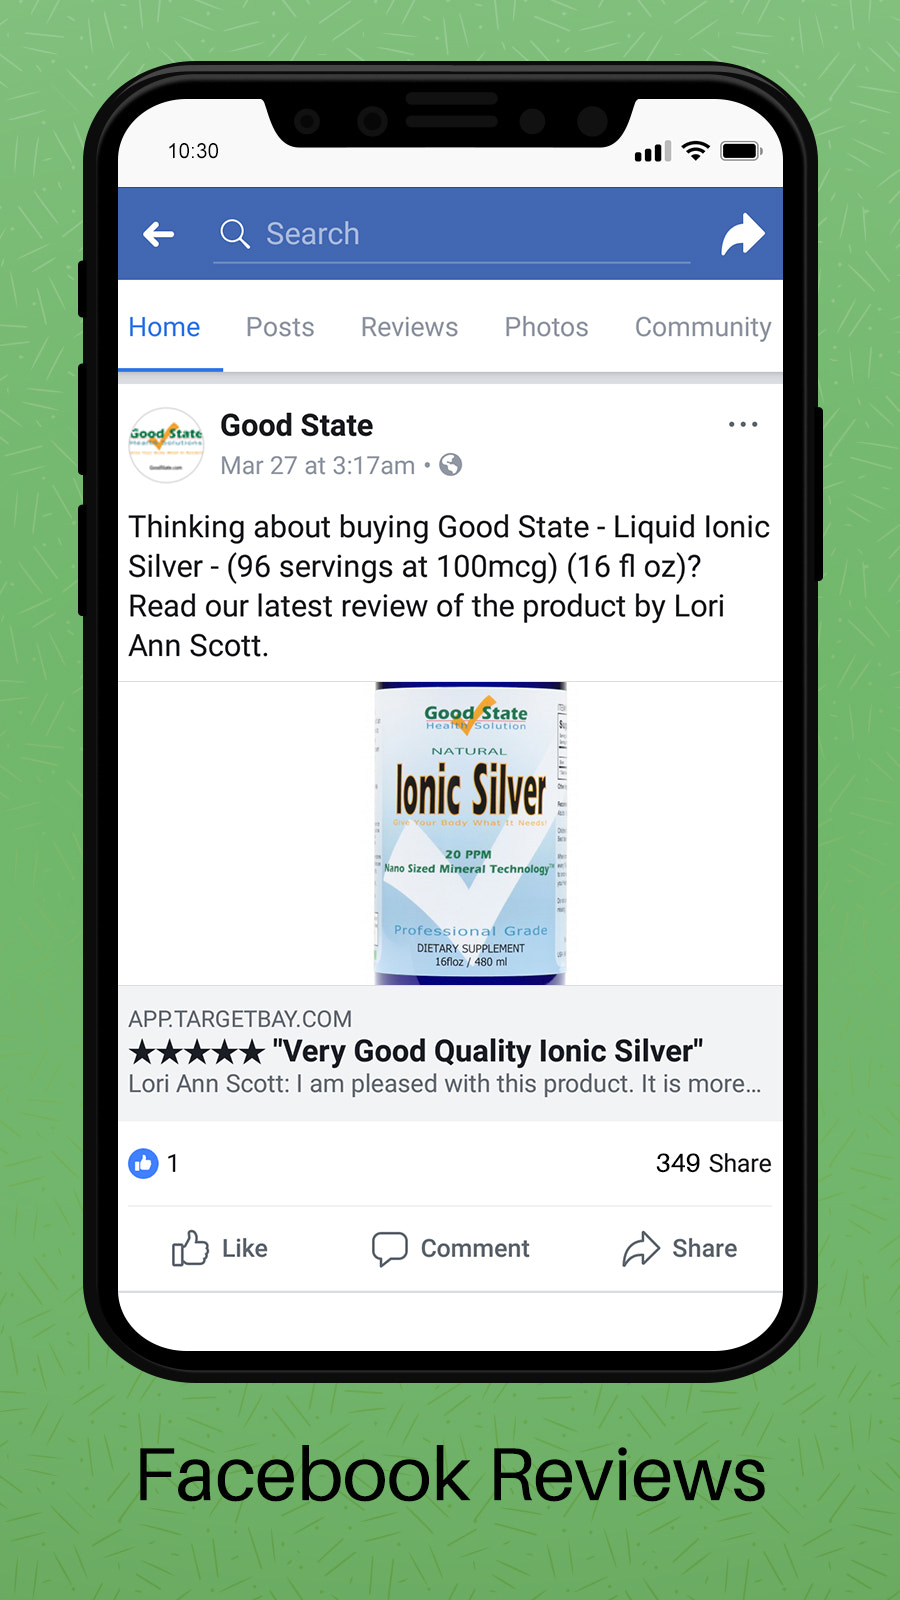 Share your Reviews on Facebook